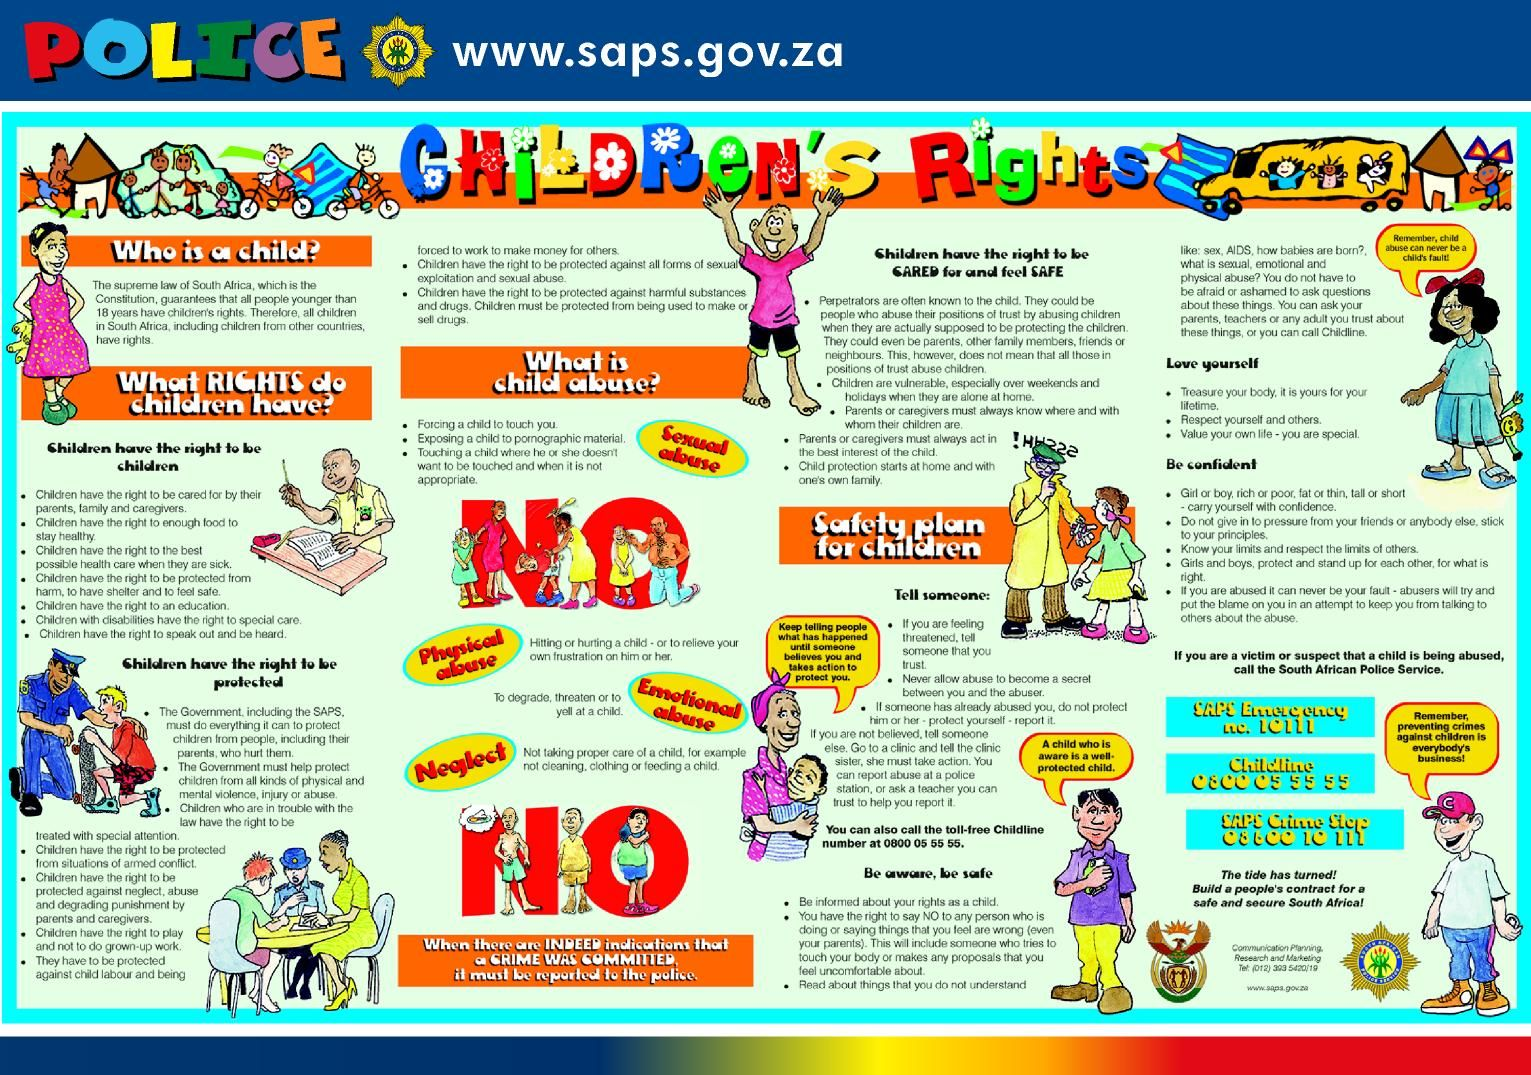 Children's rights pamphlet from South Africa Child